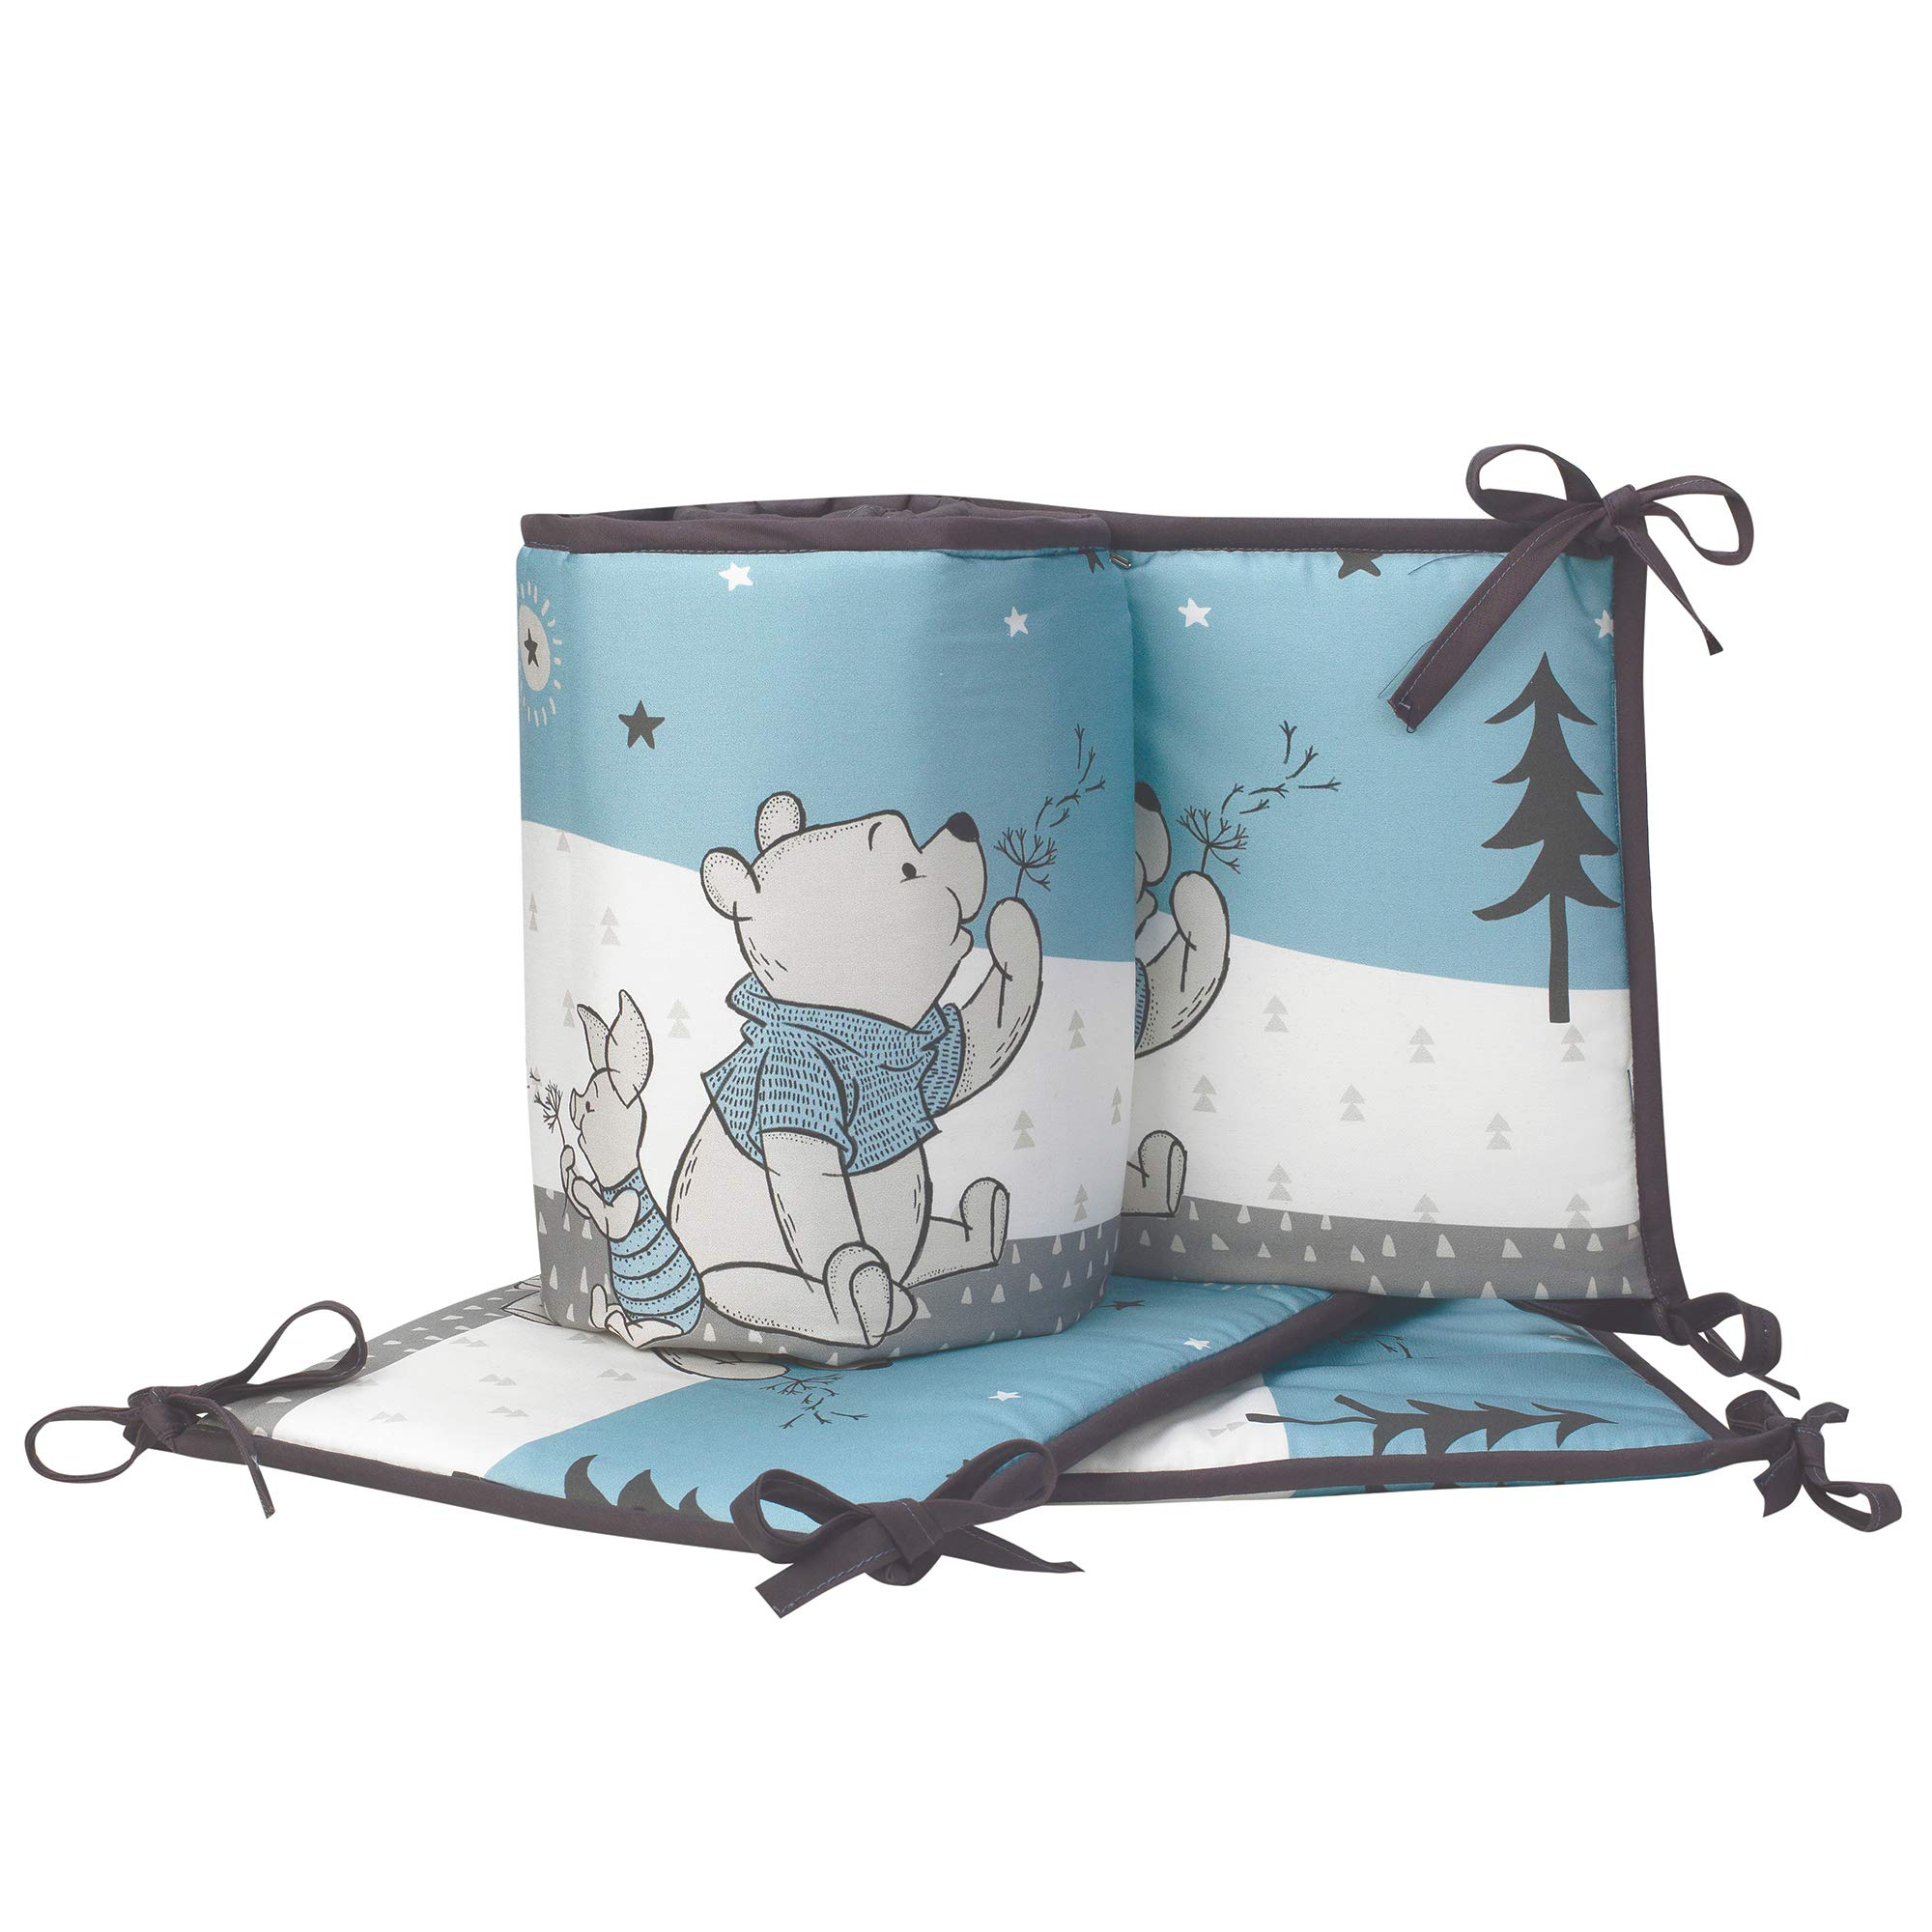 Lambs & Ivy Forever Pooh 4Piece Baby Crib Bumper, Blue by Lambs & Ivy